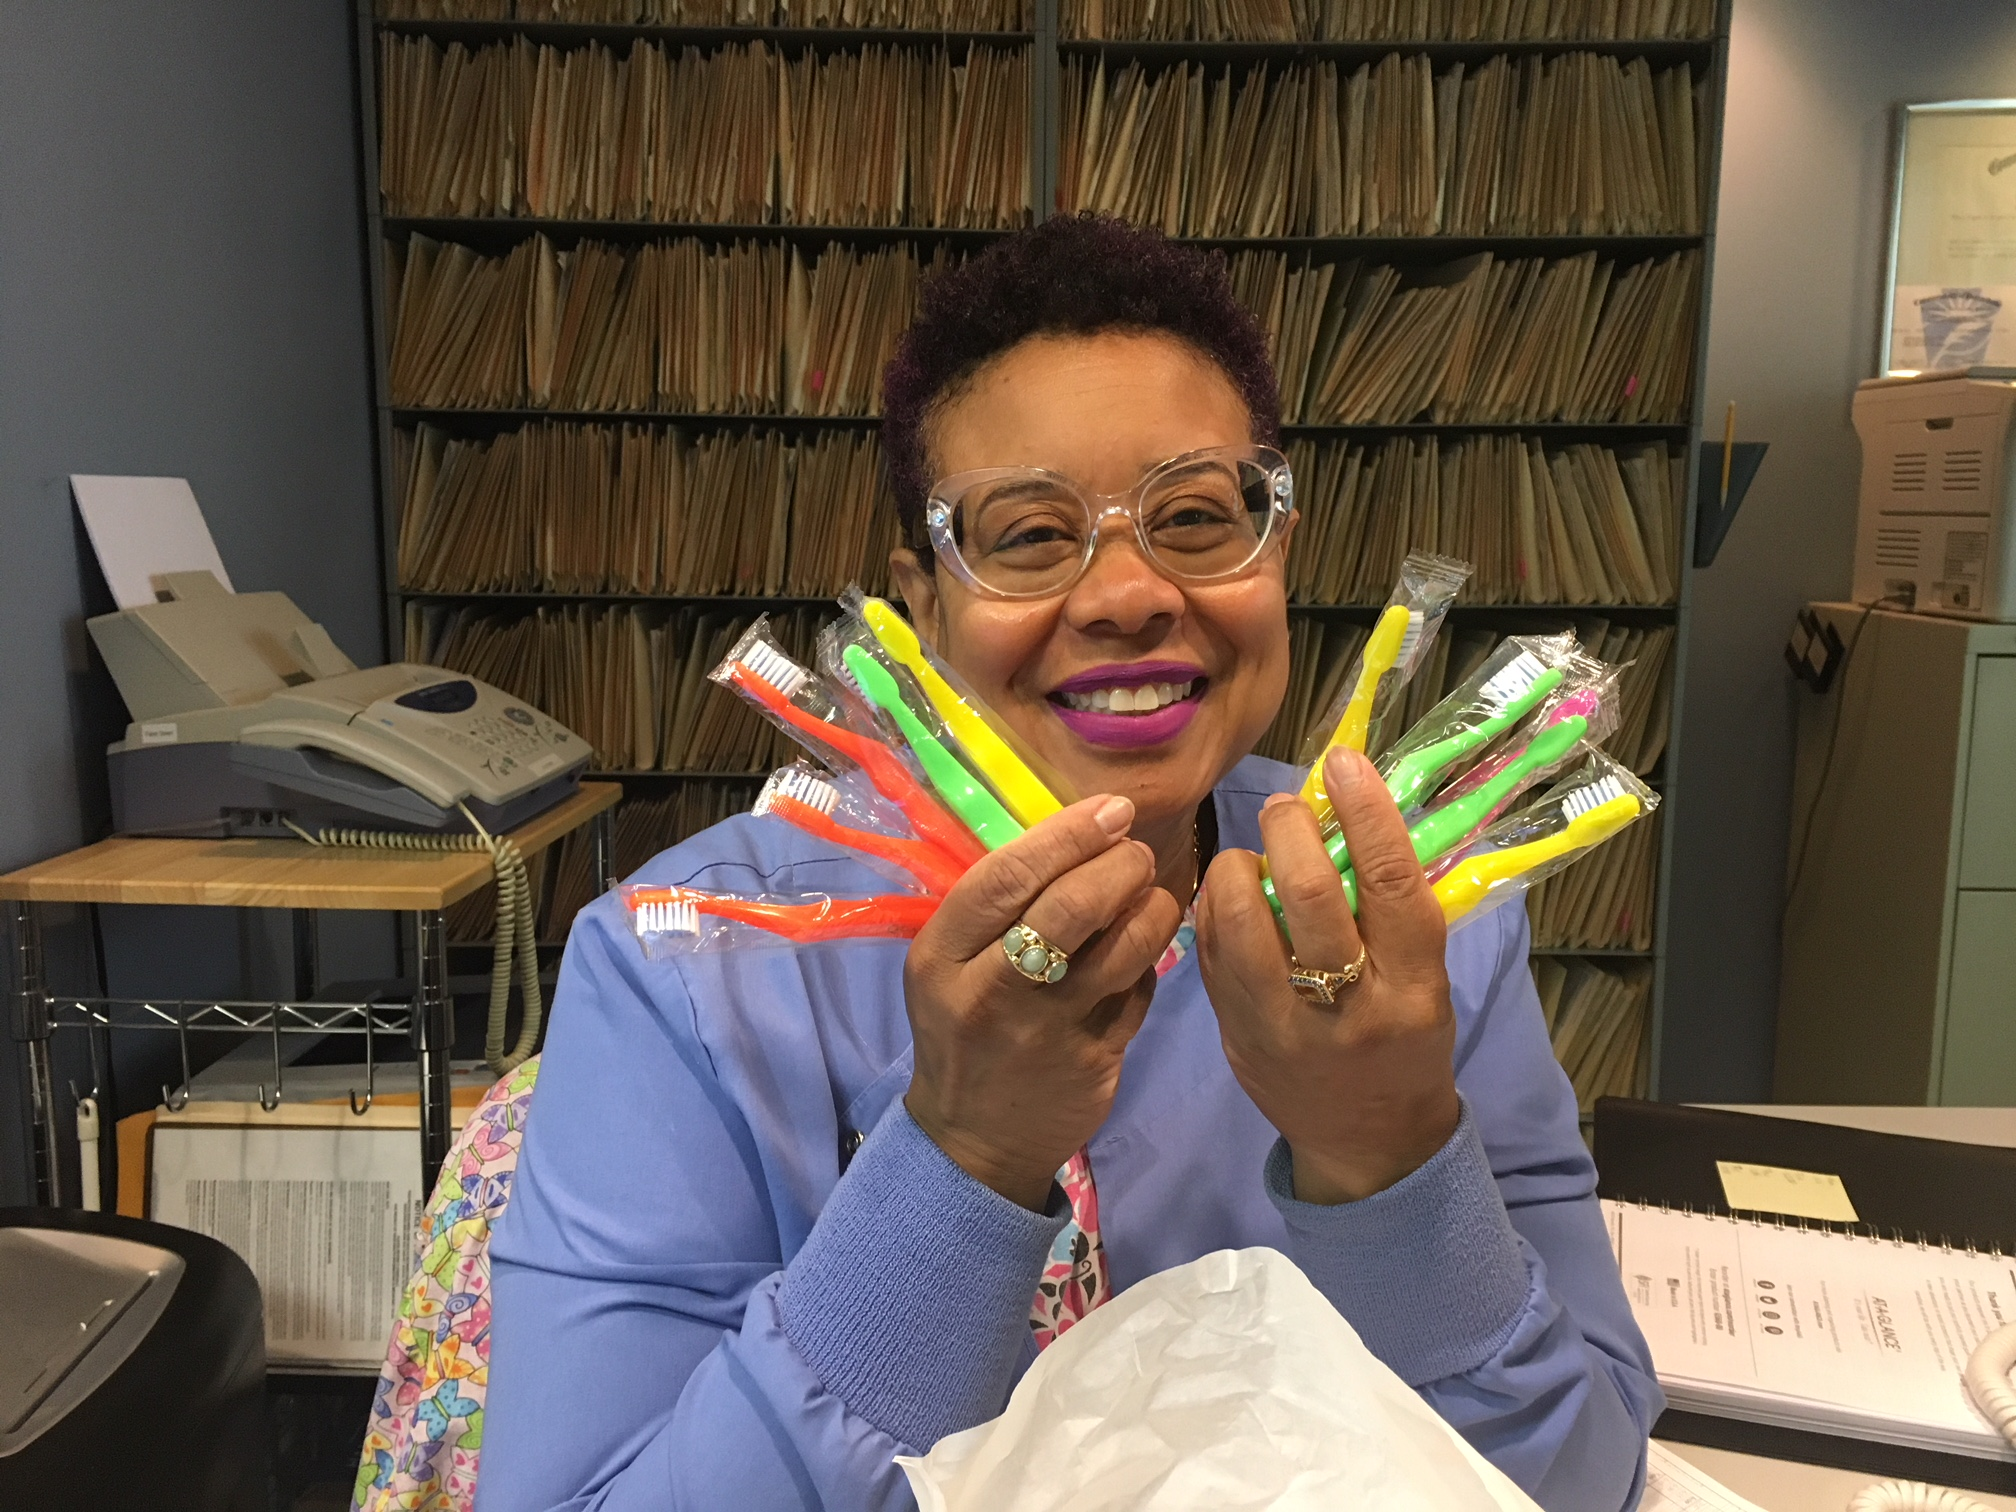 Thanks to ALL donors who helped us fill the bags without draining our budget! Dana of Dr. Philip Springer's office holds kids toothbrushes for our bags.